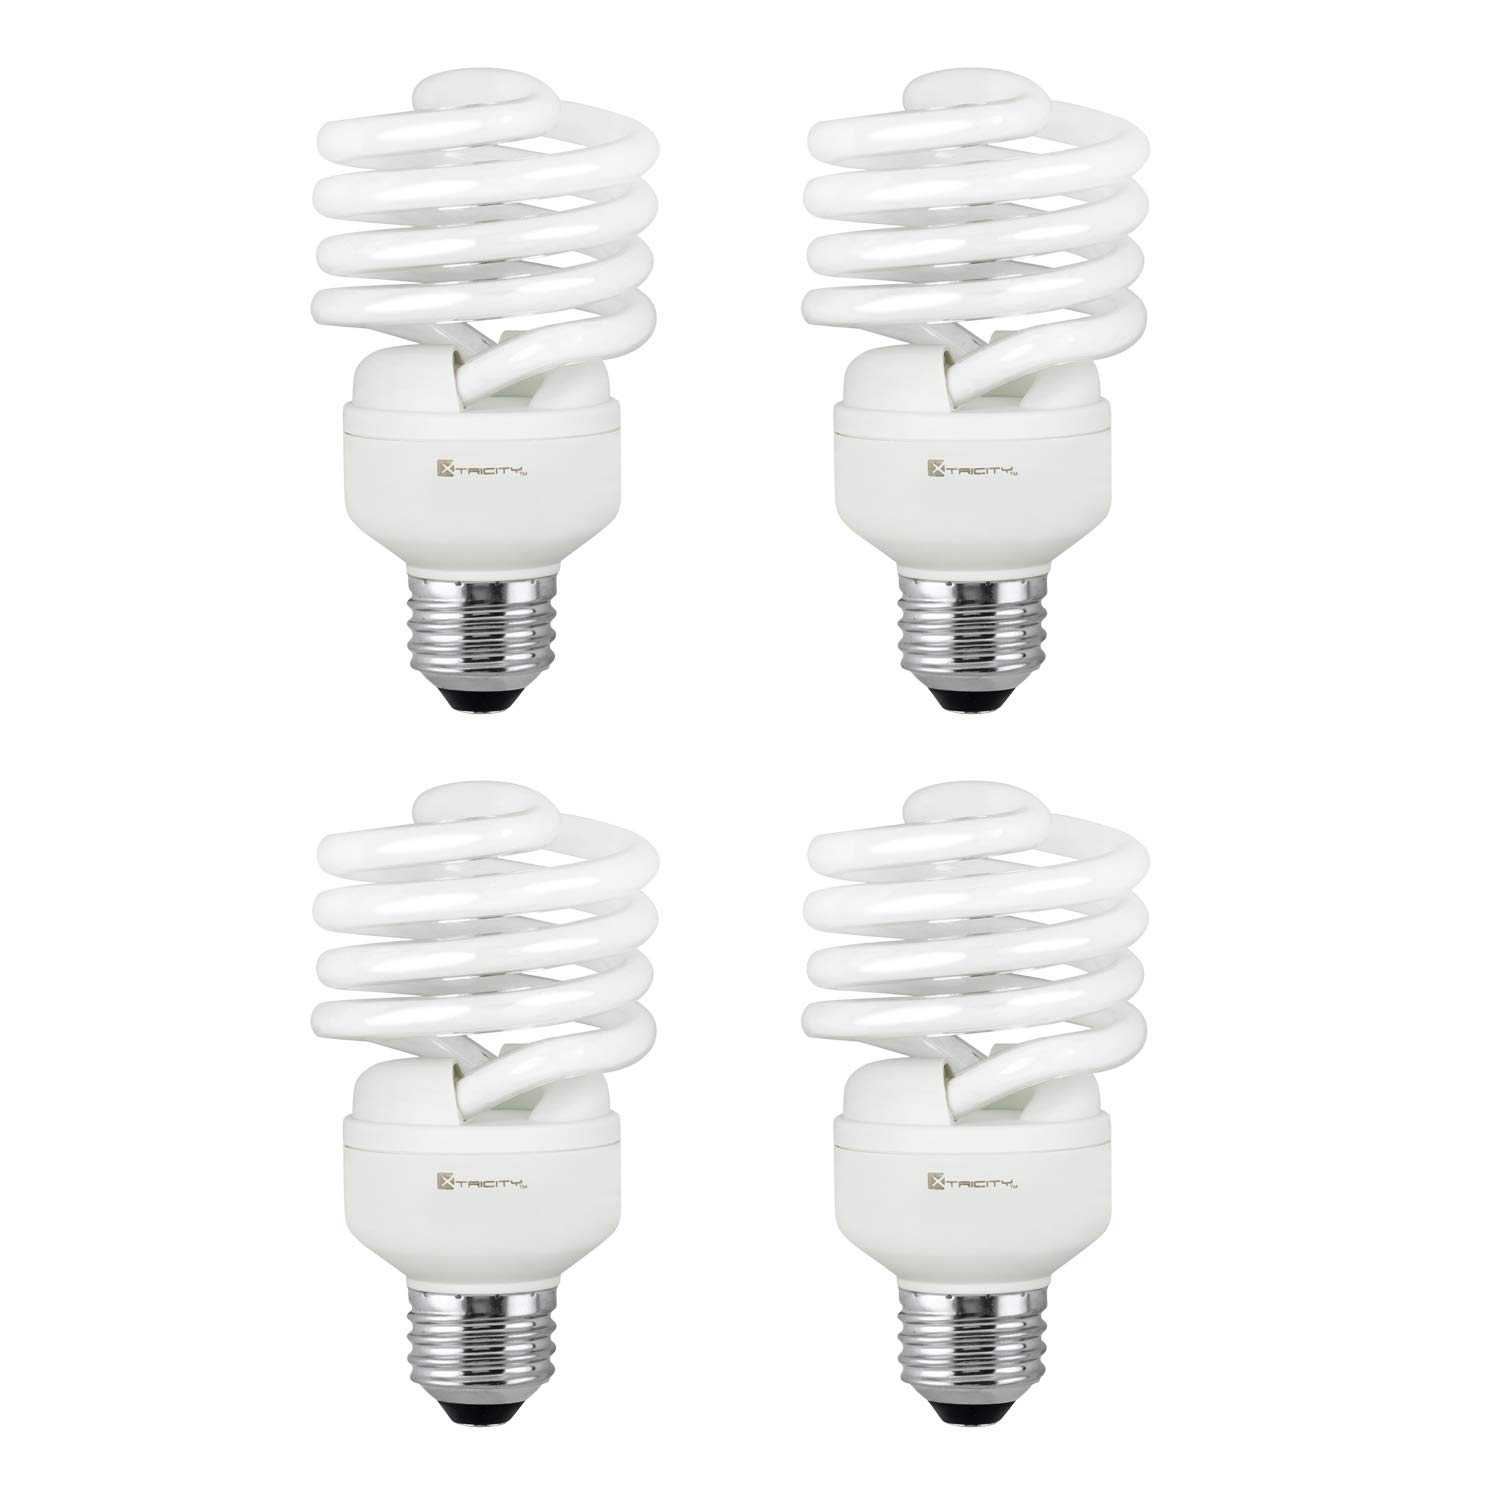 Compact Fluorescent Light Bulb T2 Spiral CFL, 5000k Daylight, 23W (100 Watt Equivalent), 1520 Lumens, E26 Medium Base, 120V, UL Listed (Pack of 4)